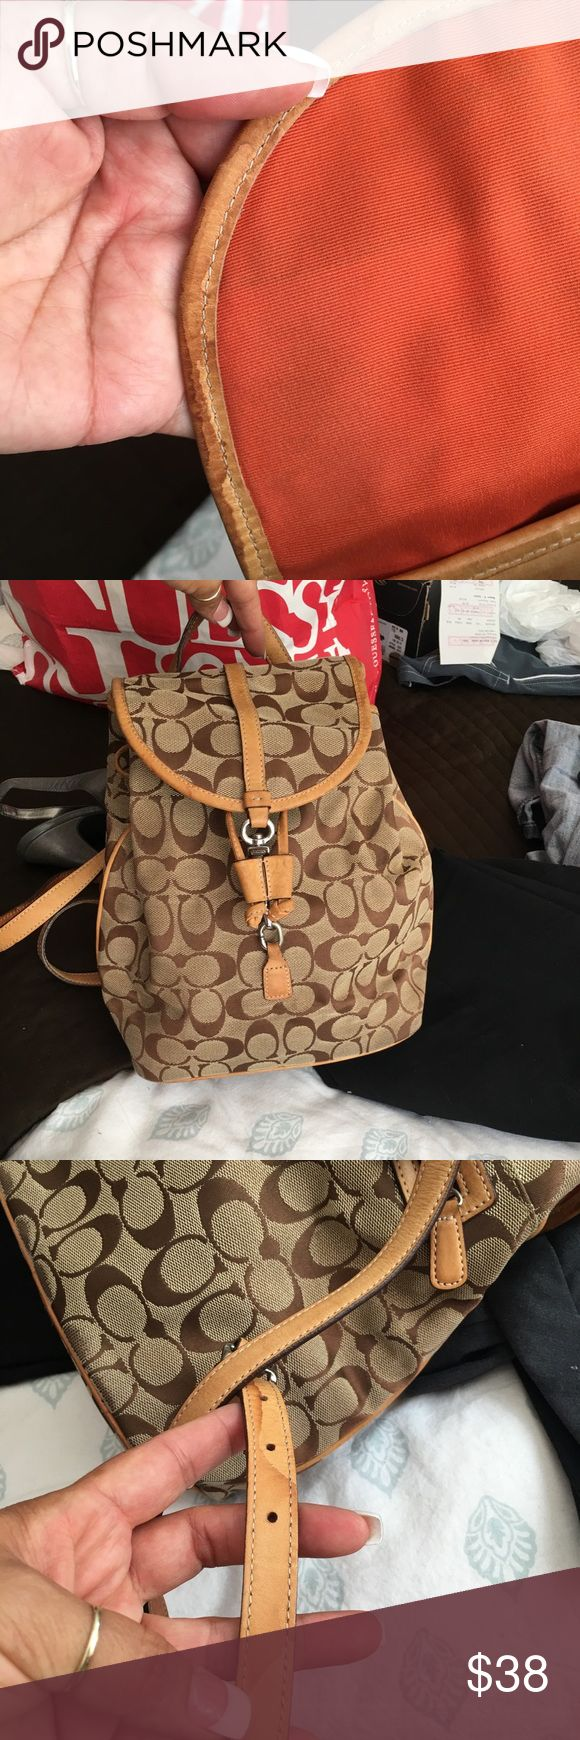 Authentic coach purse backpack/ used Authentic backpack -Coach just needs cleaning Coach Bags Backpacks